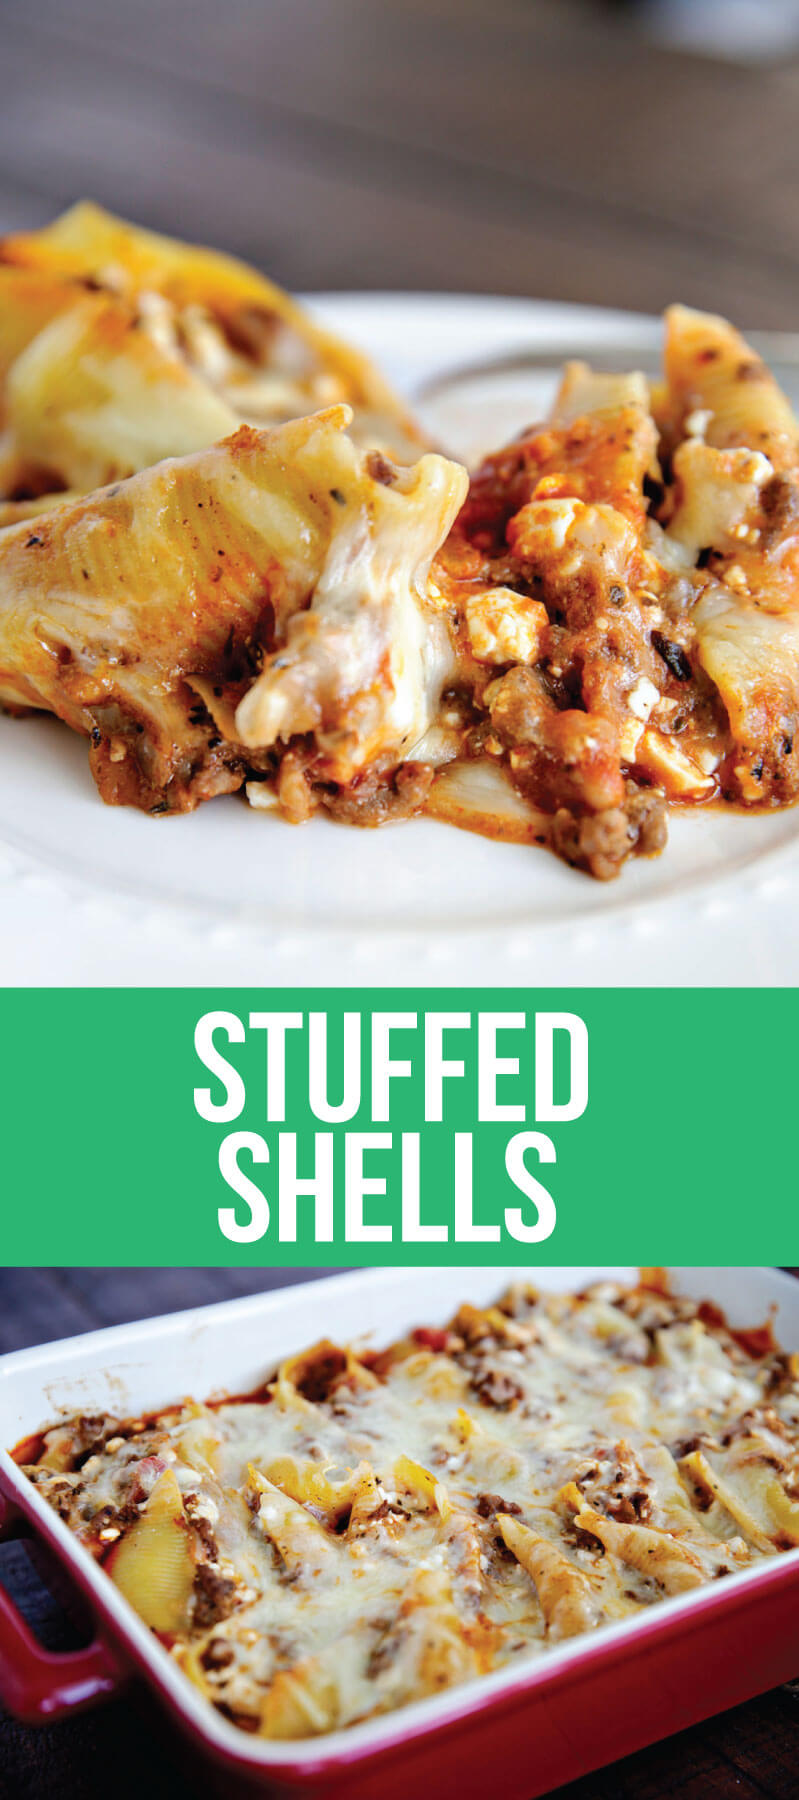 Stuffed Shells Recipe - an easy recipe that can be made ahead and your whole family will love it! www.thirtyhandmadedays.com